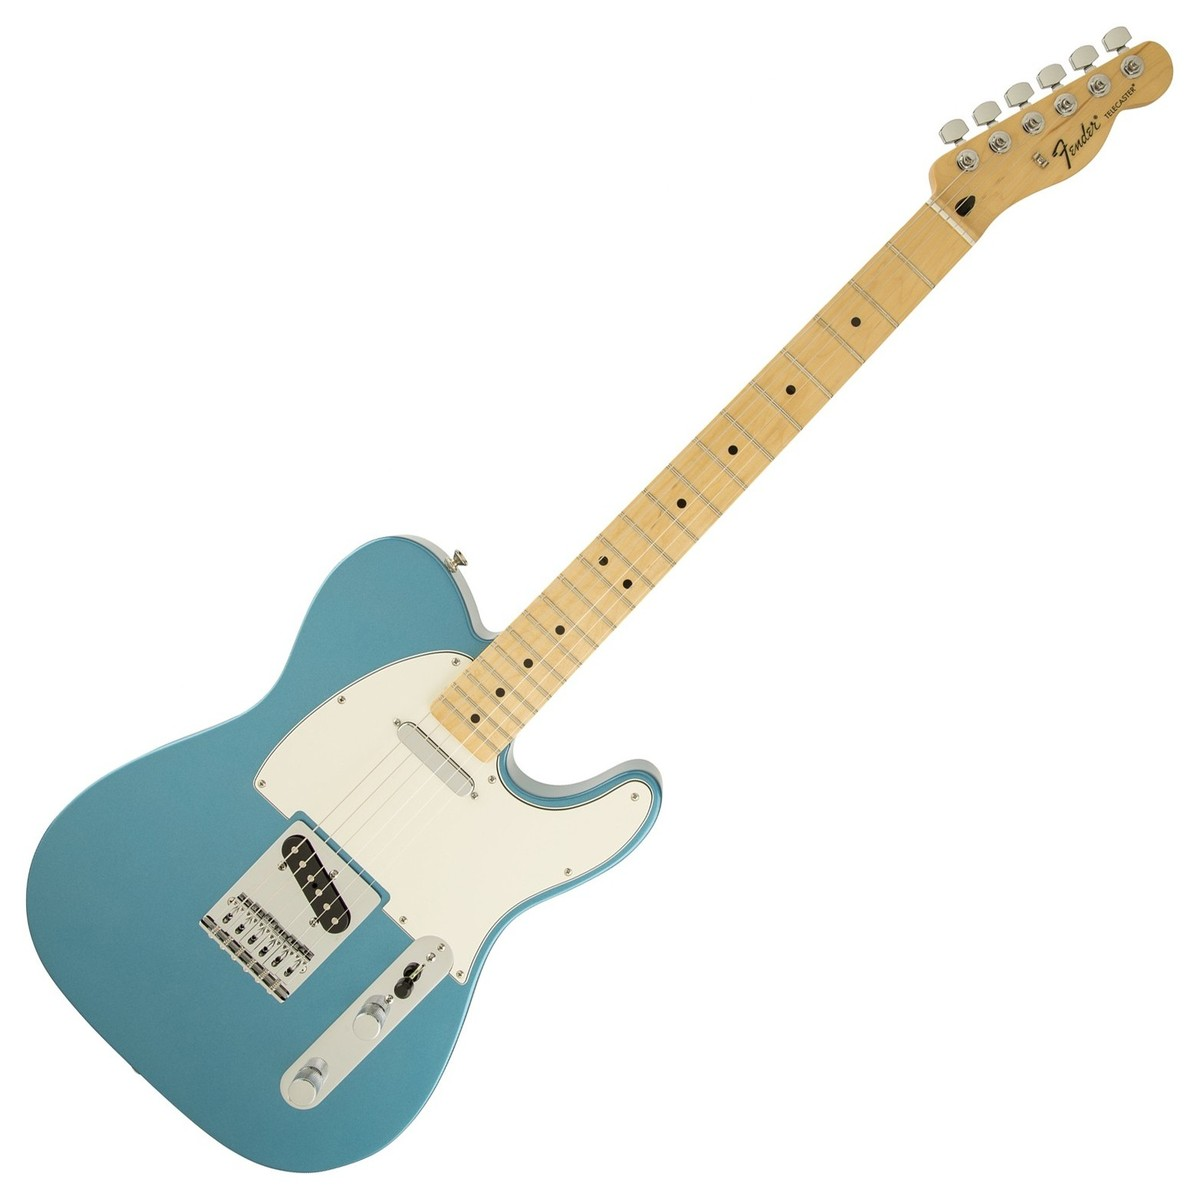 fender standard telecaster mn lake placid blue at. Black Bedroom Furniture Sets. Home Design Ideas